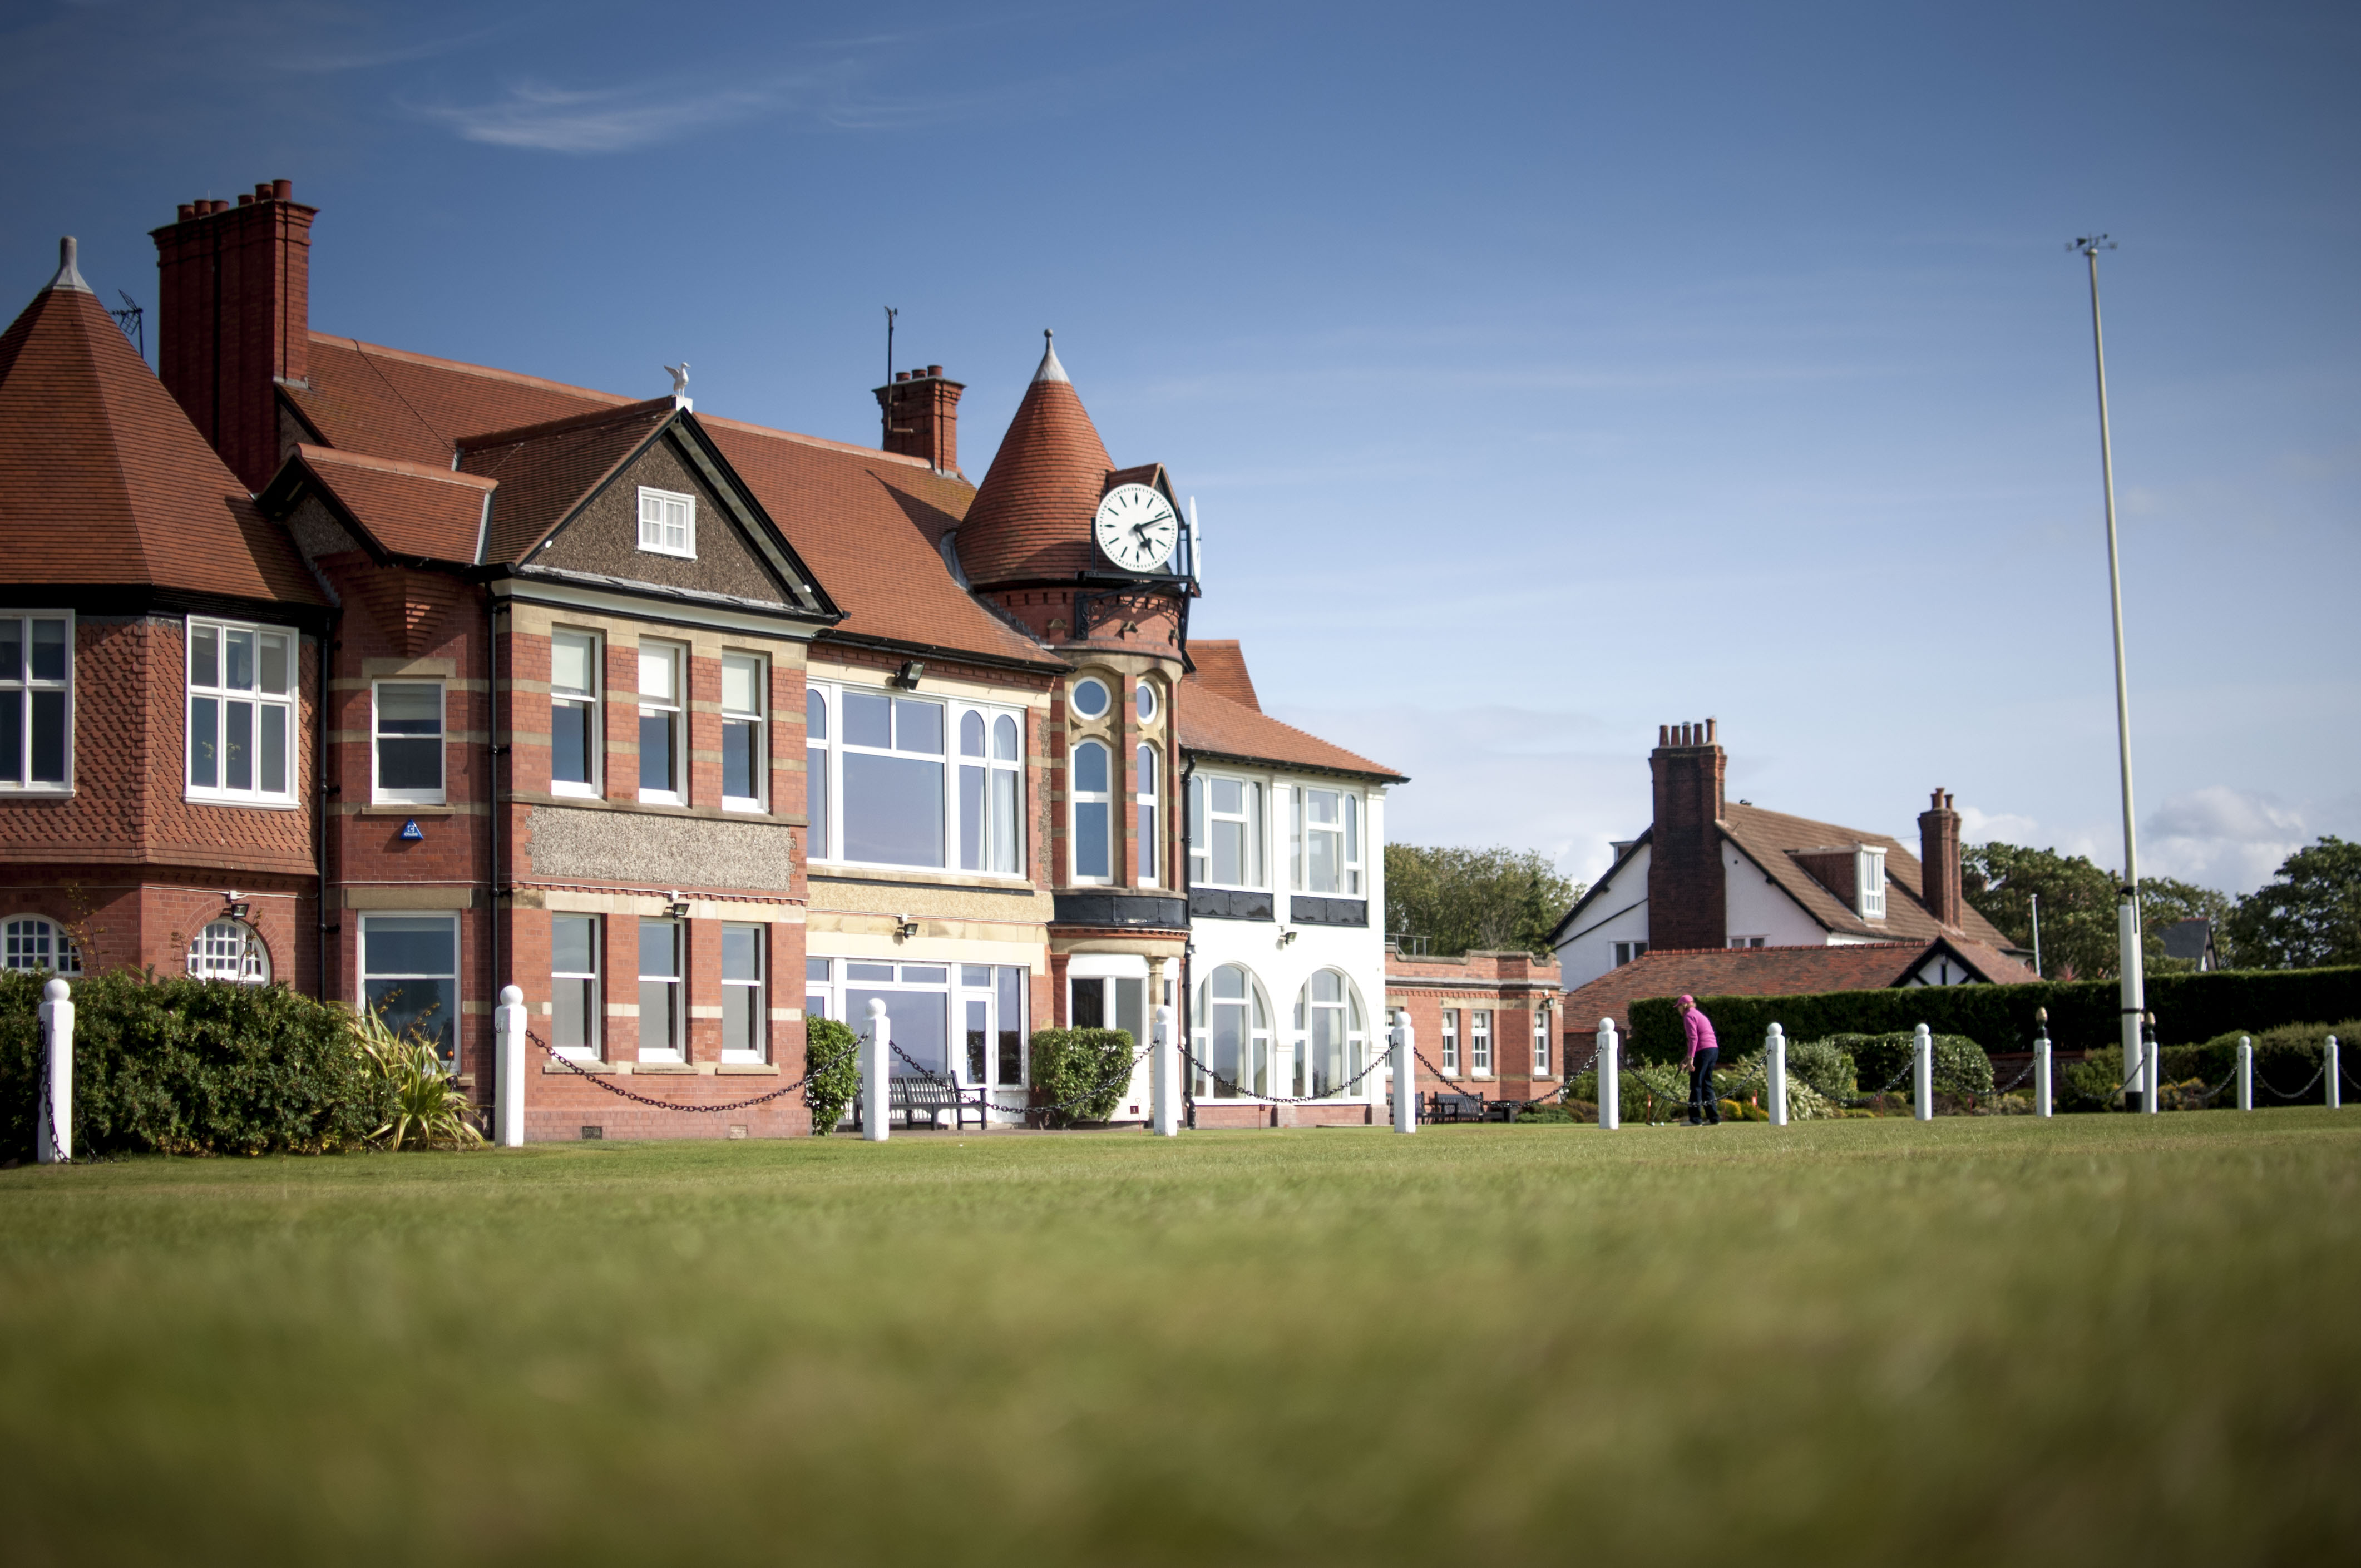 The 151st Open at Royal Liverpool (Hoylake) in 2022 - PerryGolf.com